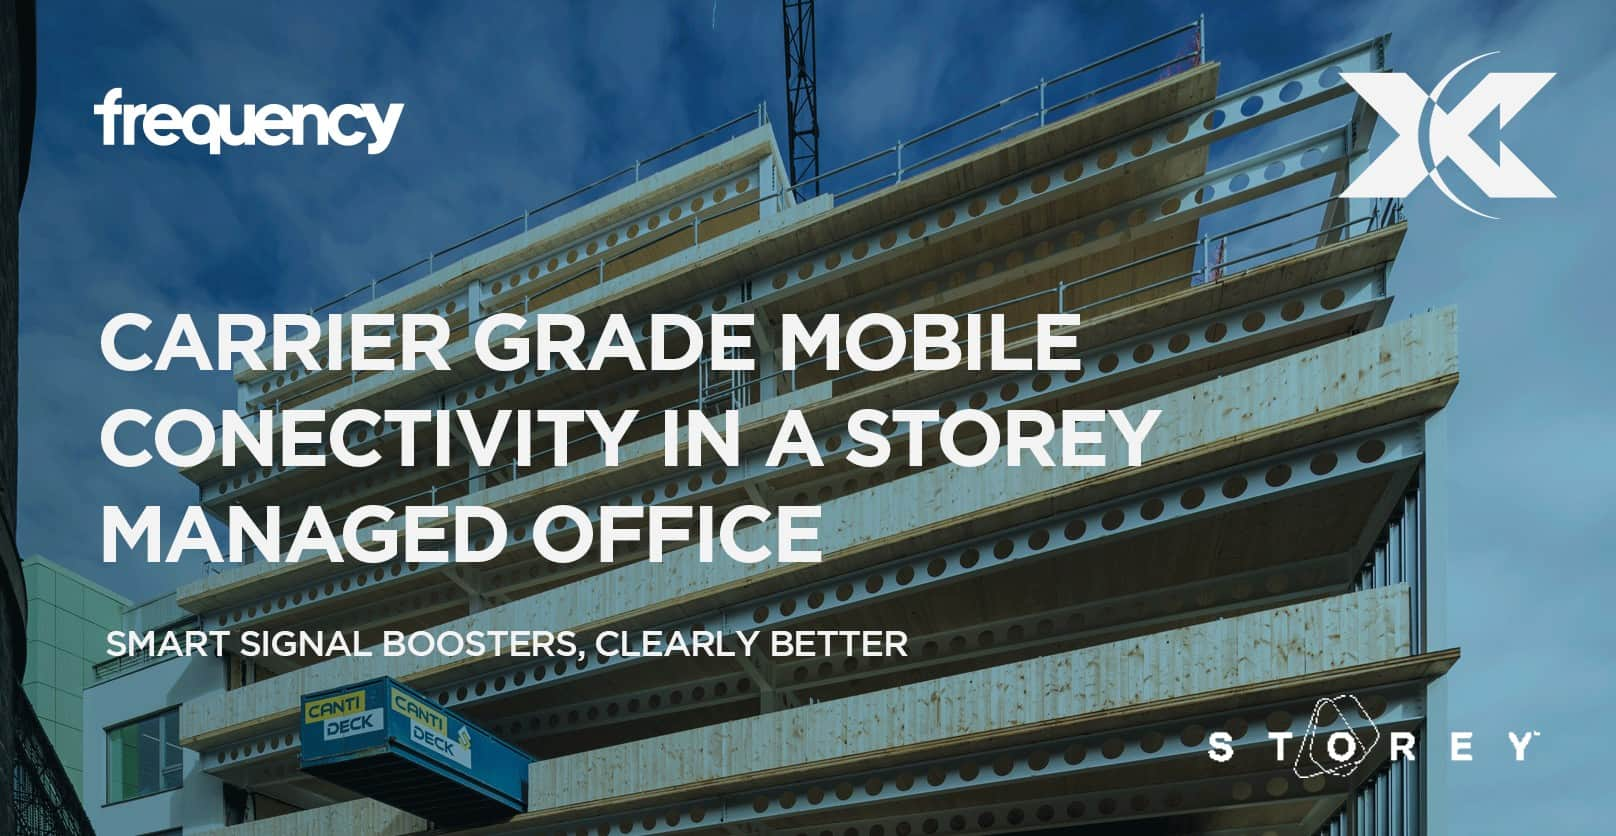 Mobile connectivity in Storey